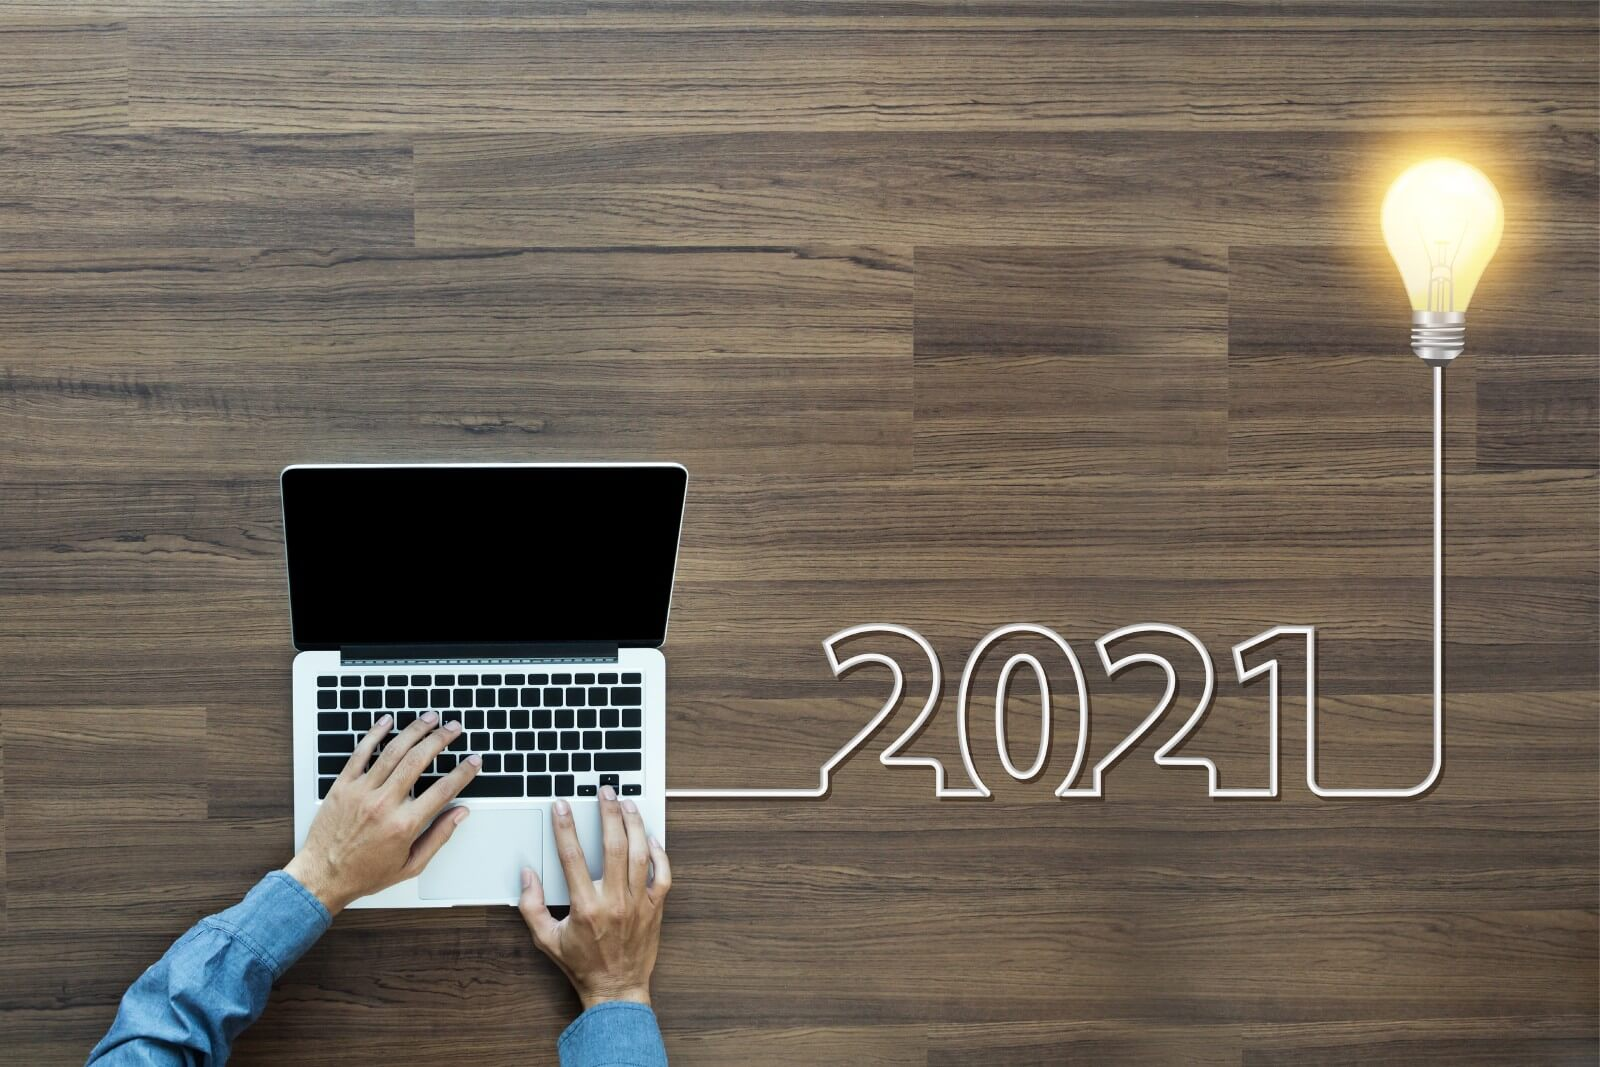 The Top 10 SEO Trends to Look Out for in 2021